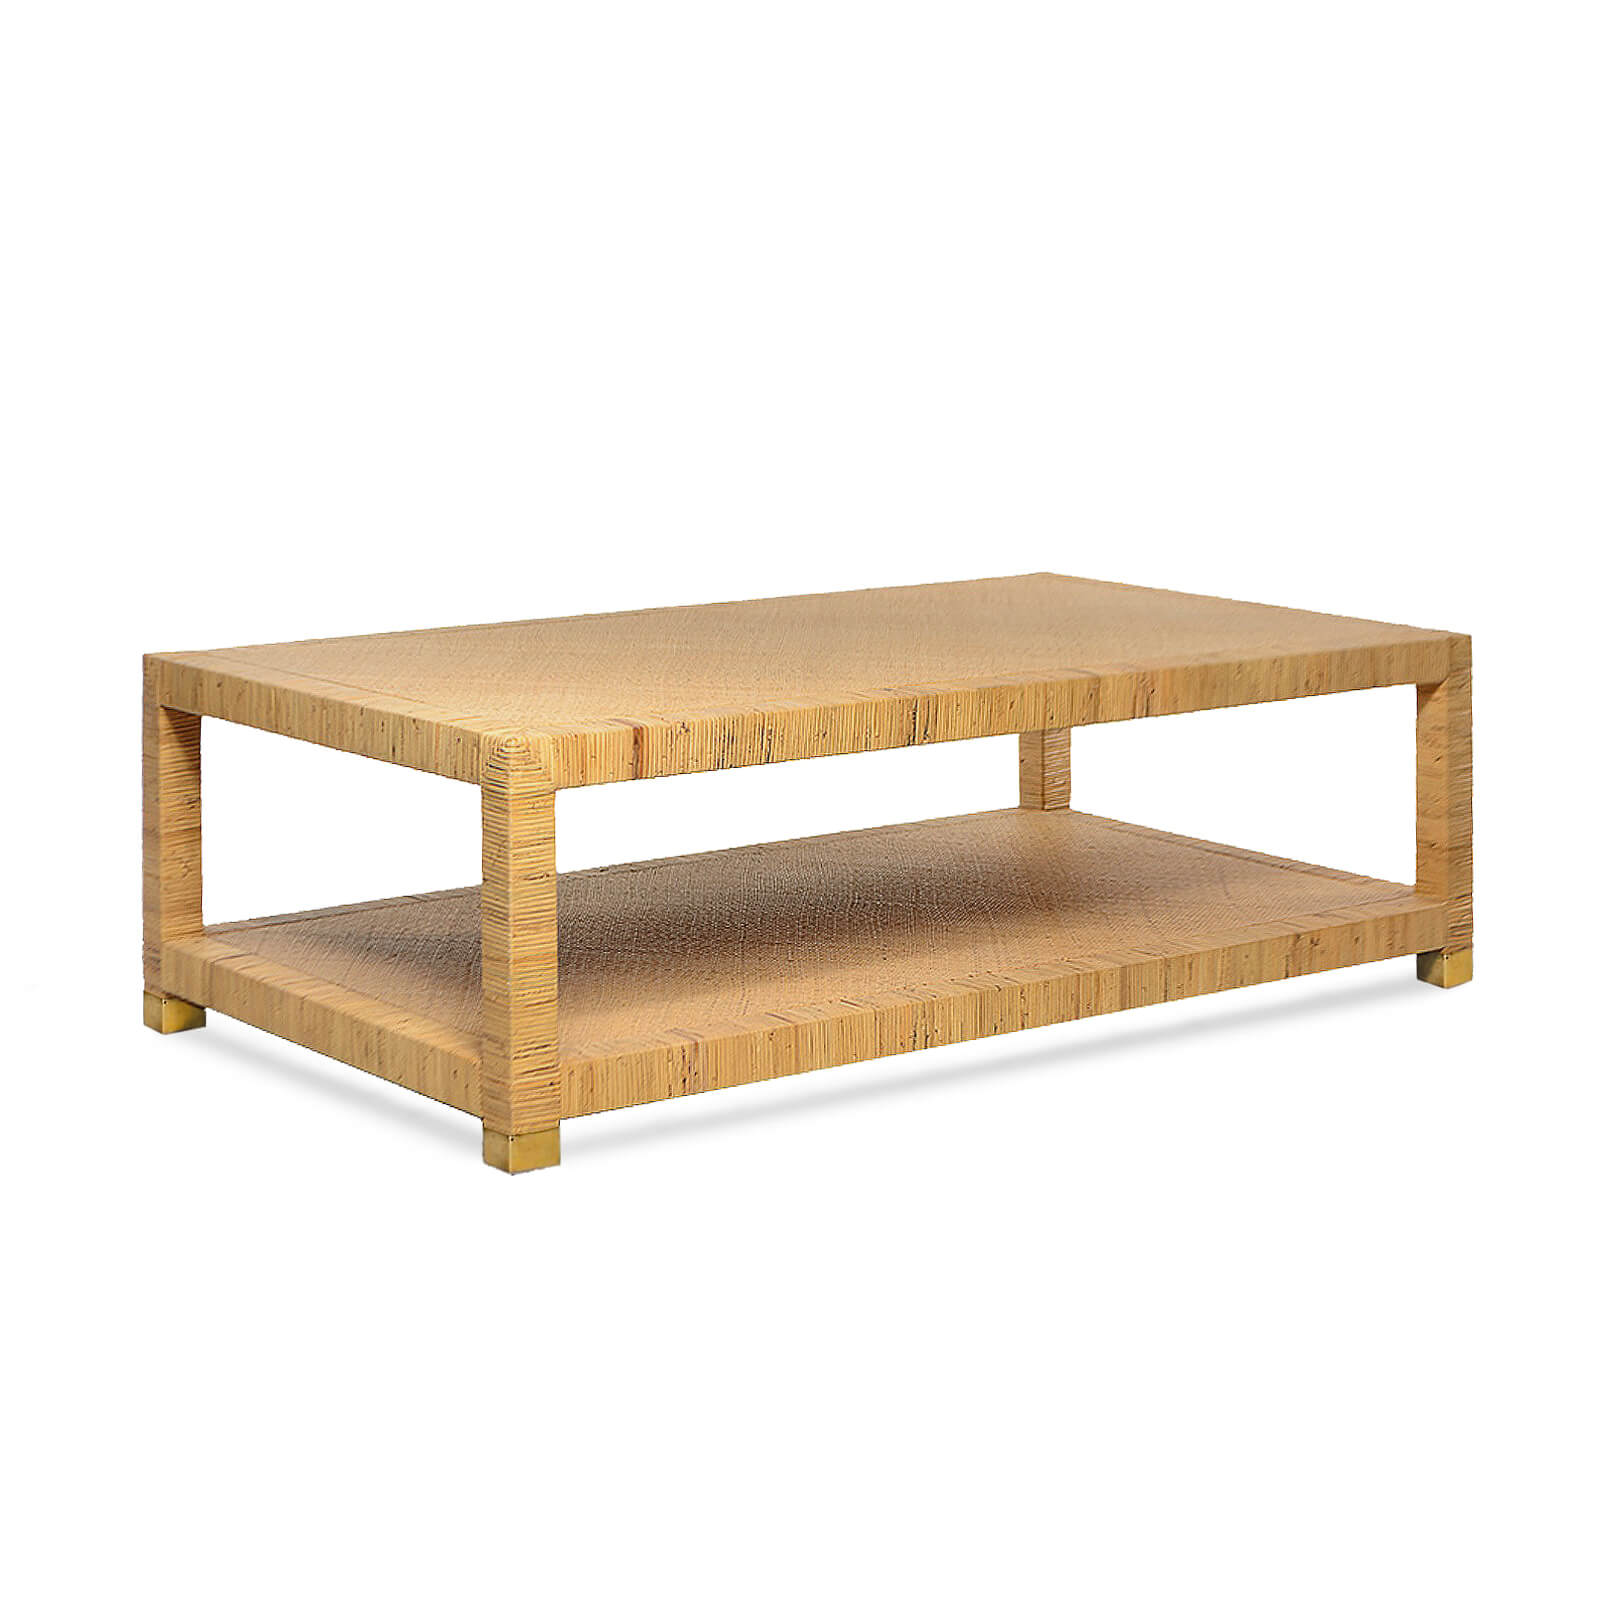 TB372 INDIGO COAST SOFA TABLE - STUART MEMBERY HOME COLLECTION